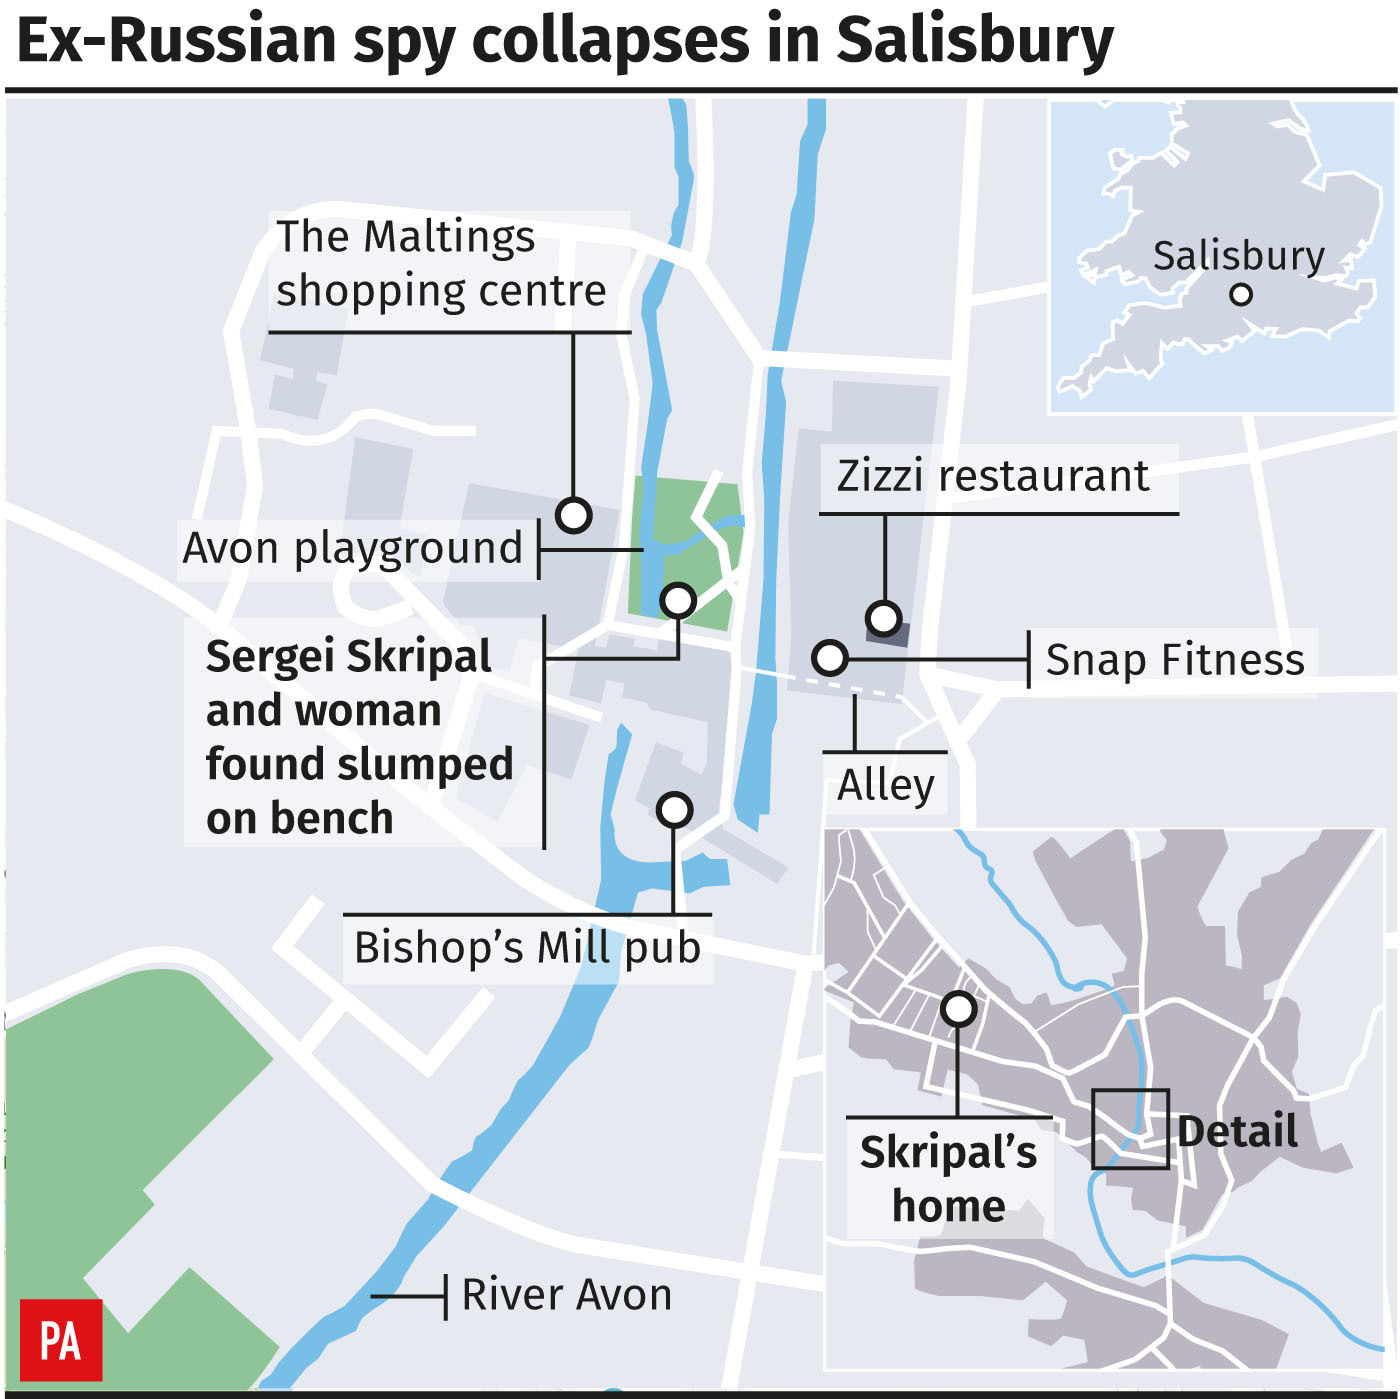 Ex-Russian spy collapses in Salisbury, graphic shows key locations